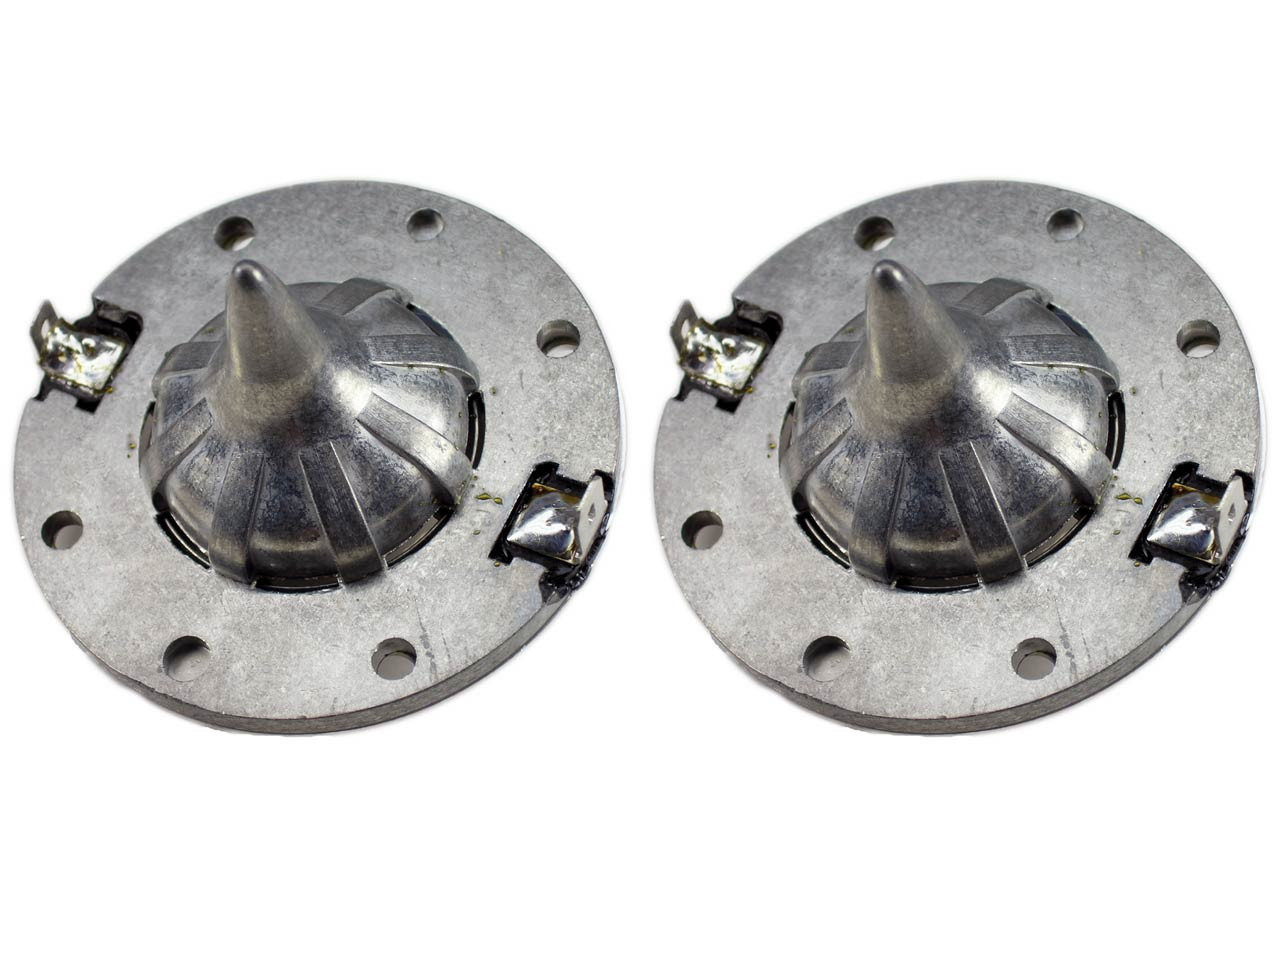 SS Audio Diaphragm for JBL 2408 Diaphragm (2 PACK)